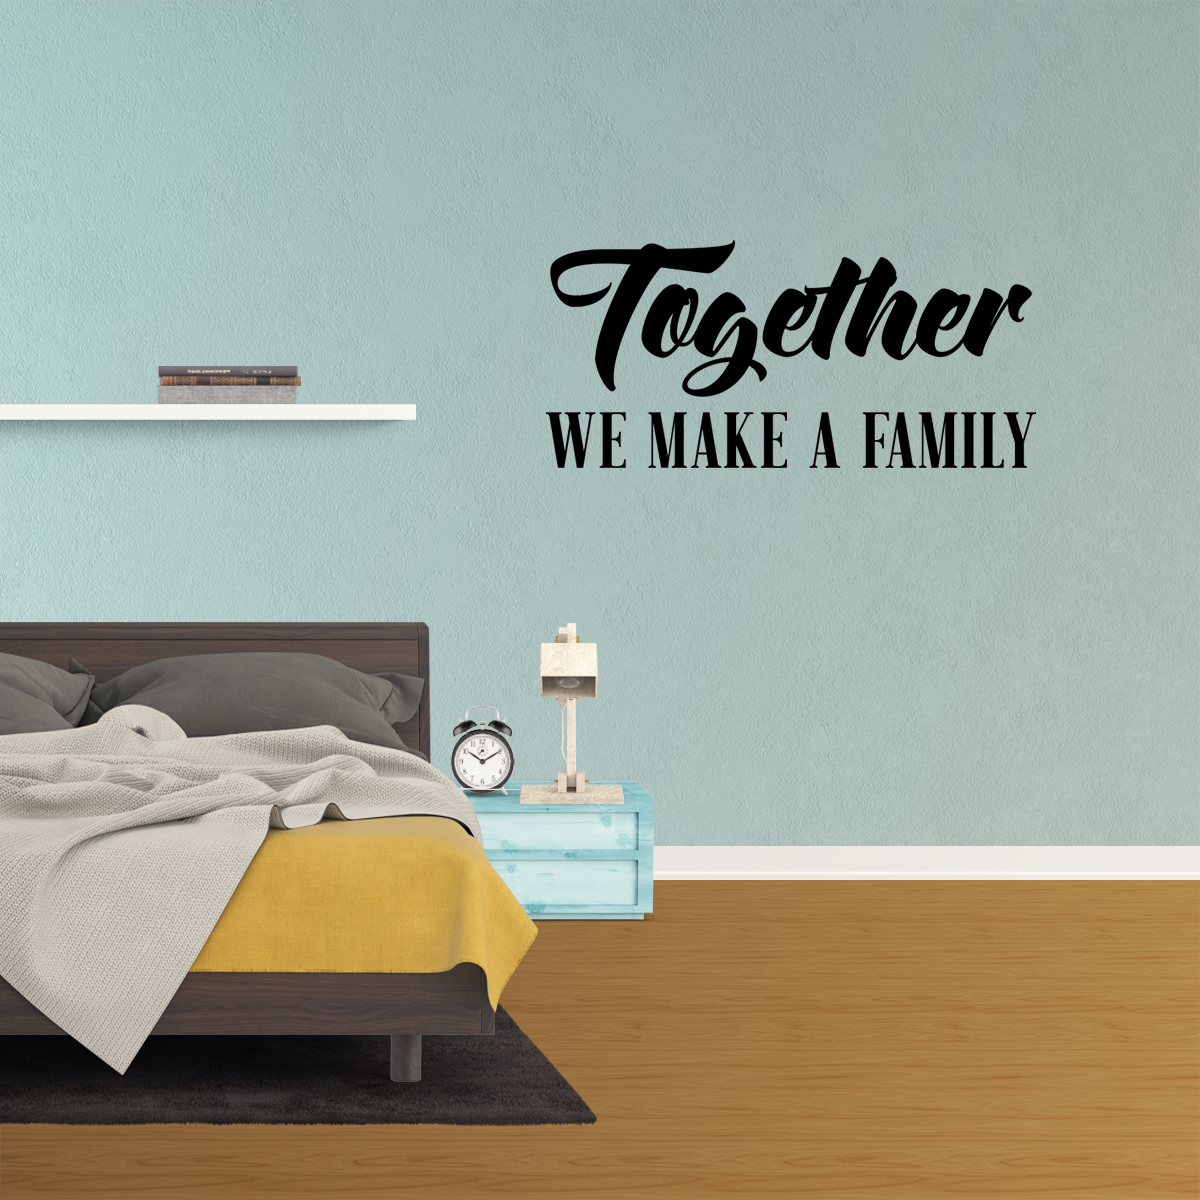 Wall Decal Quote Together We Make A Family Decor Living Room Sticker Bedroom Sign Art XJ177